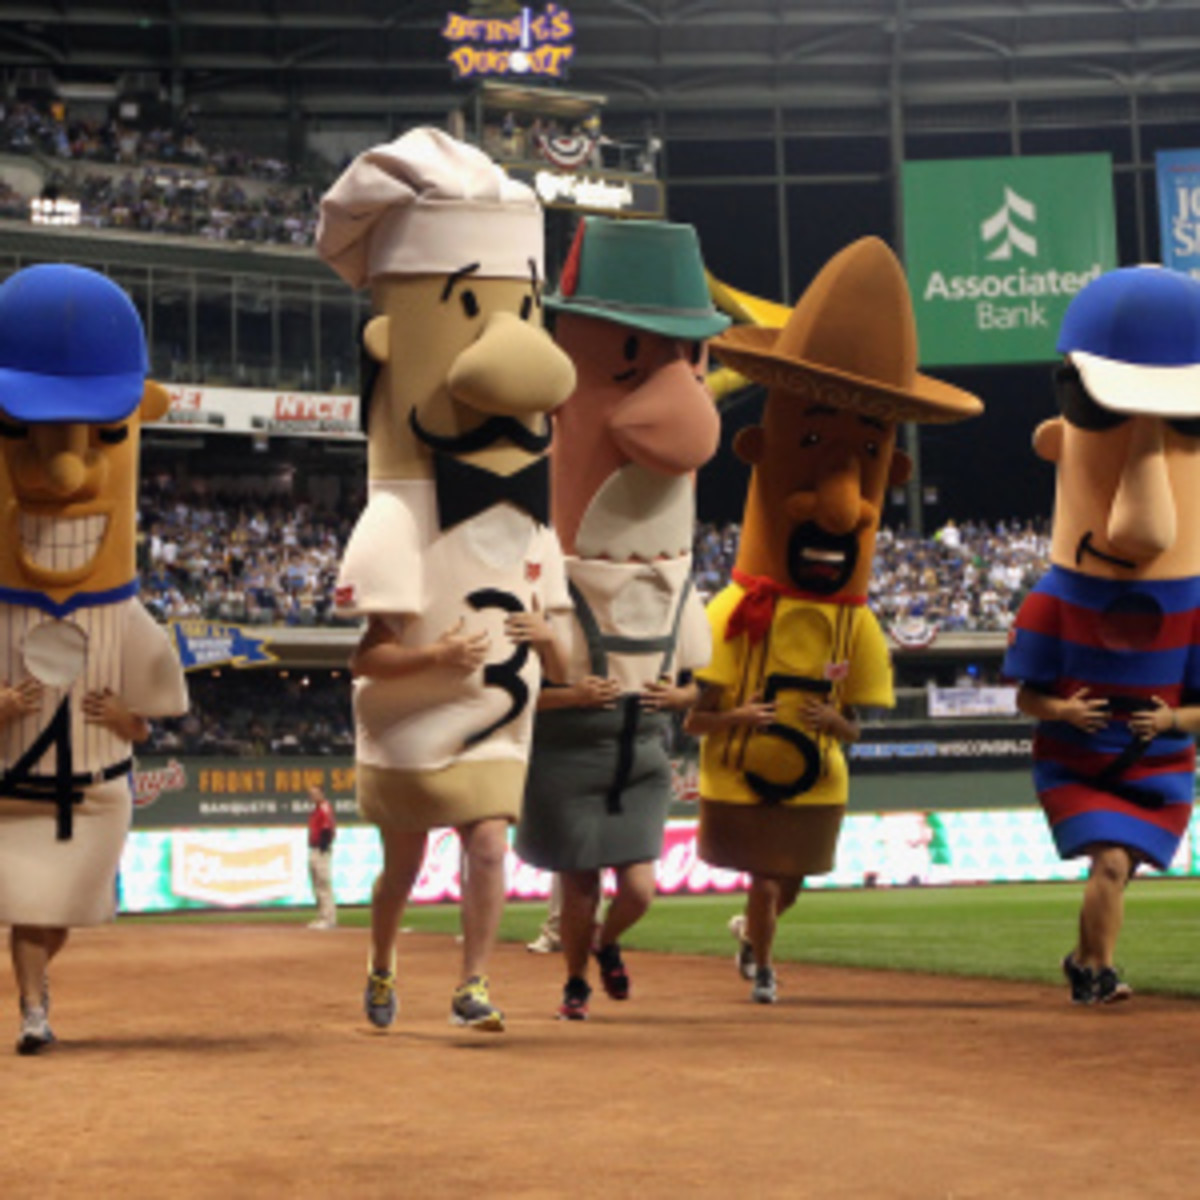 The Racing Italian Sausage at Brewers games has gone missing. (Christian Petersen/Getty Images)